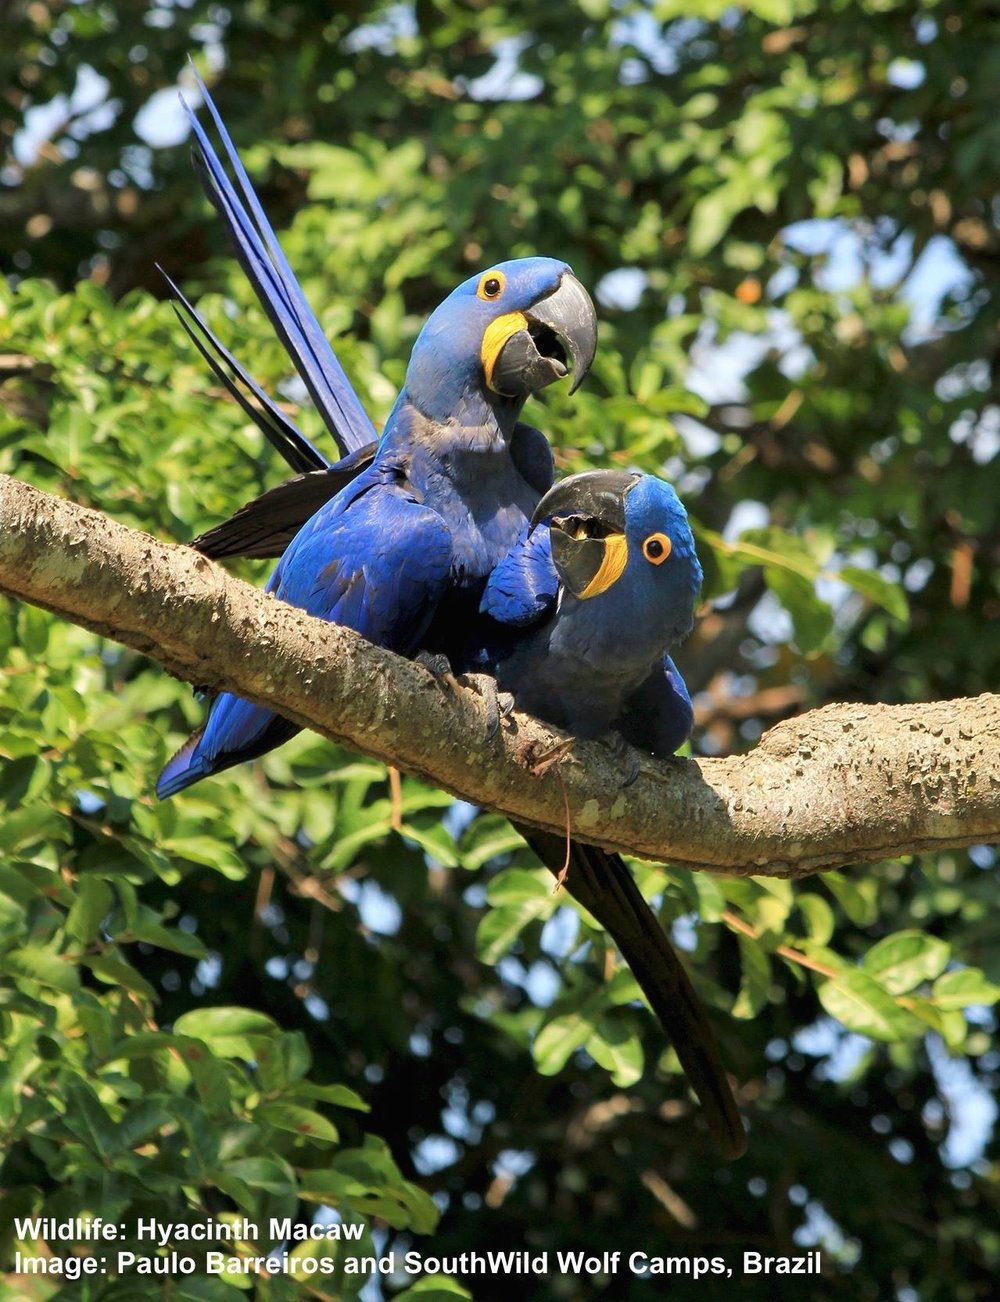 HYACINTH MACAWS AT AN INTIMATE MOMENT. IMAGE: ©PAULO BARREIROS THANKS TO SOUTHWILD, BRAZIL.